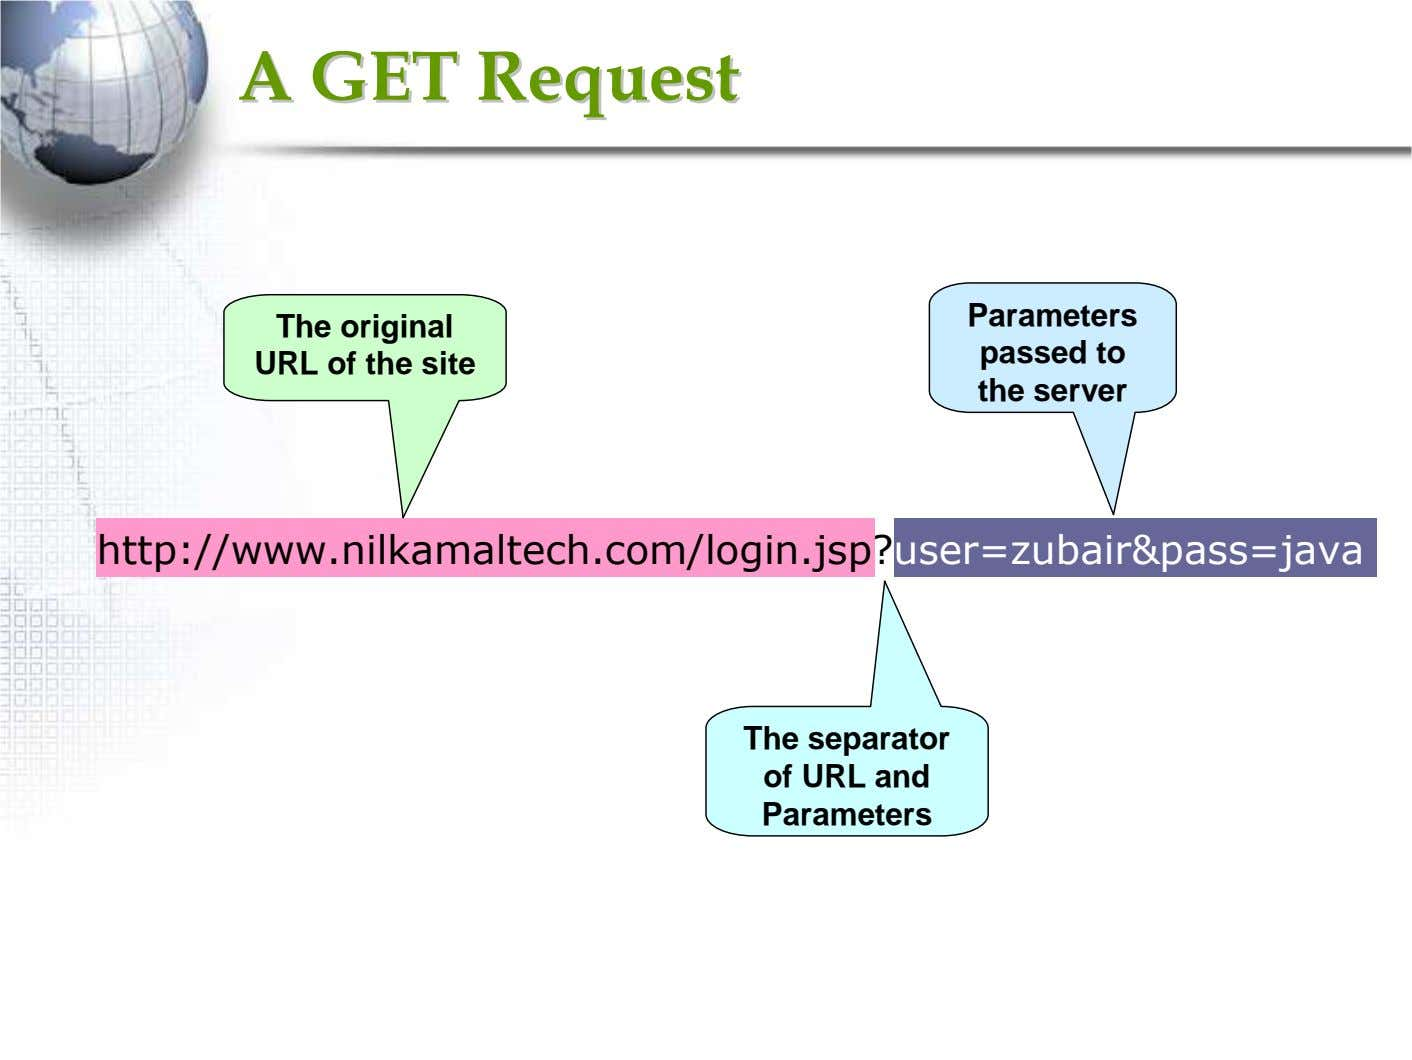 AA GETGET RequestRequest The original URL of the site Parameters passed to the server